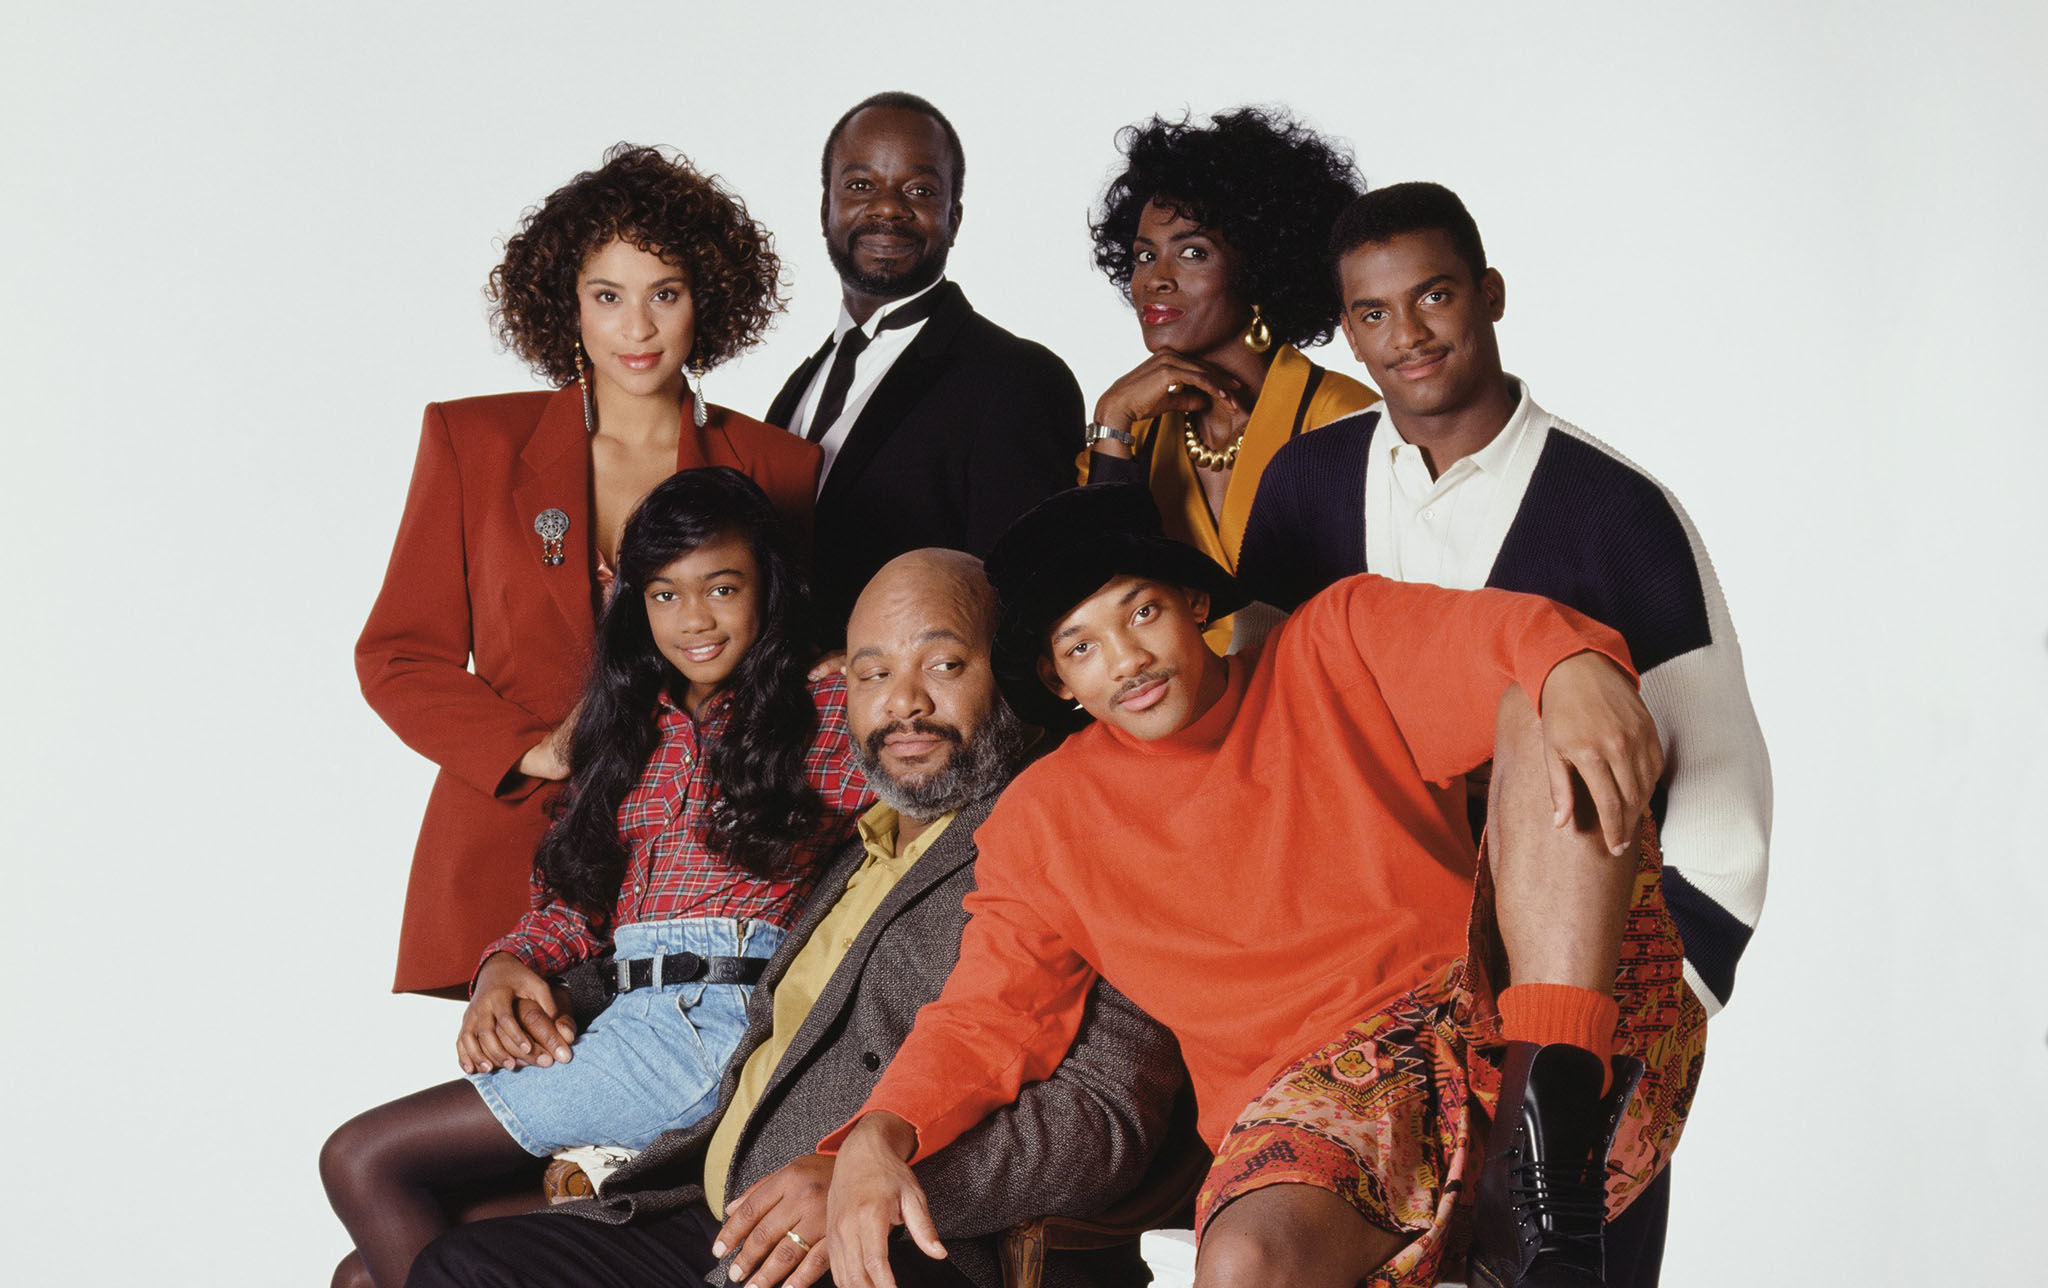 The Fresh Prince of Bel Air Cast Photo